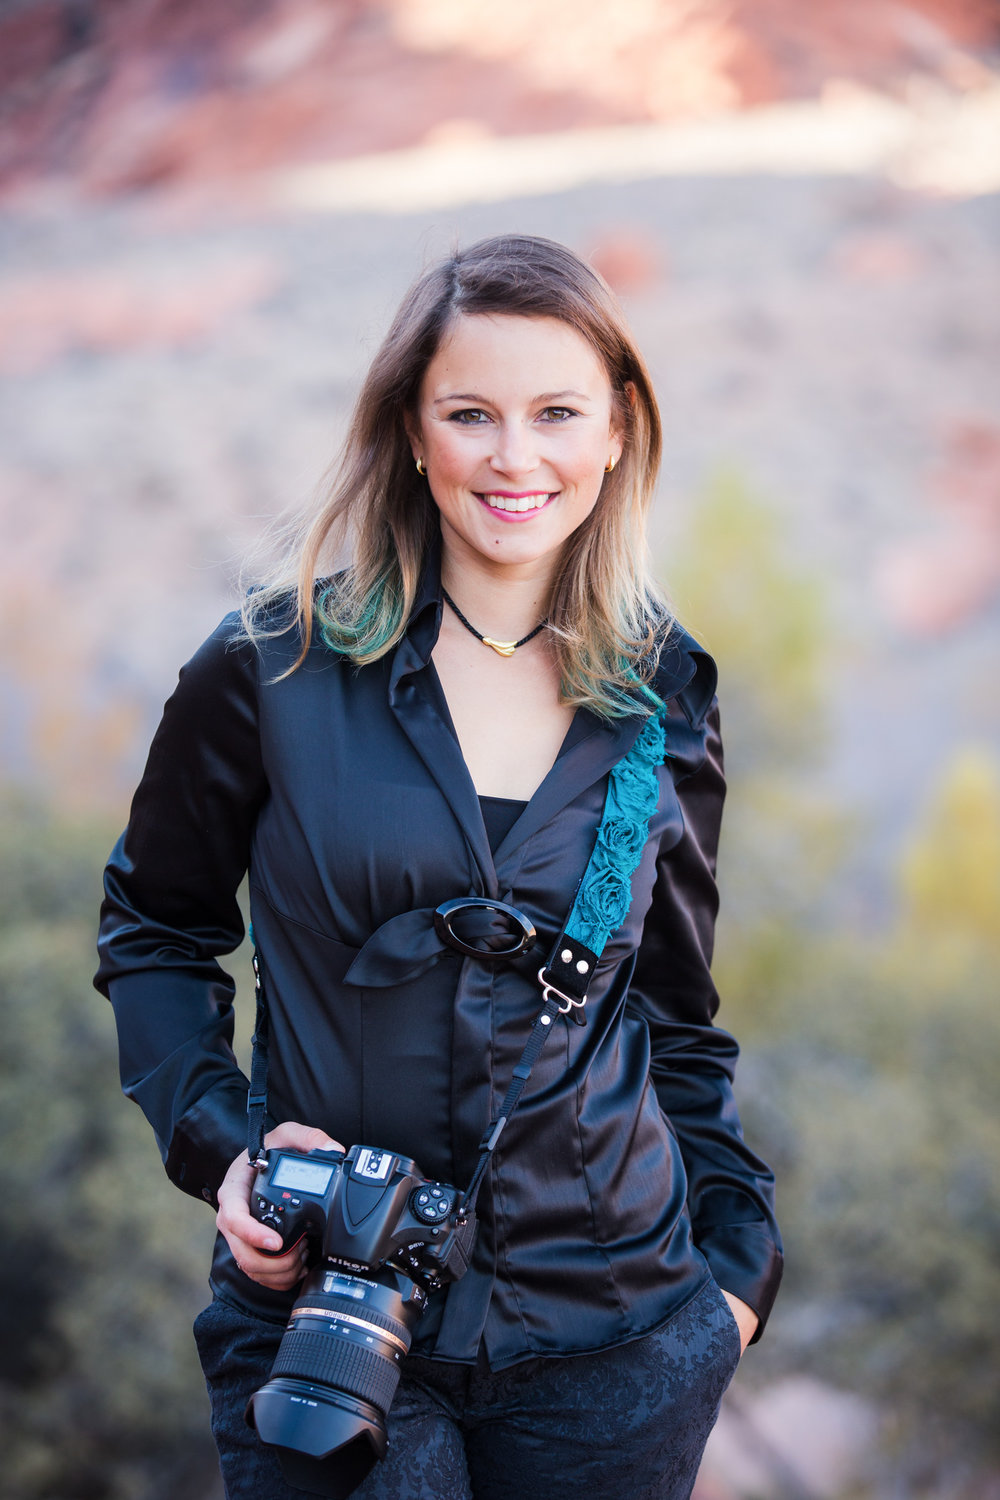 Meet owner and photographer Martina Zandonella -